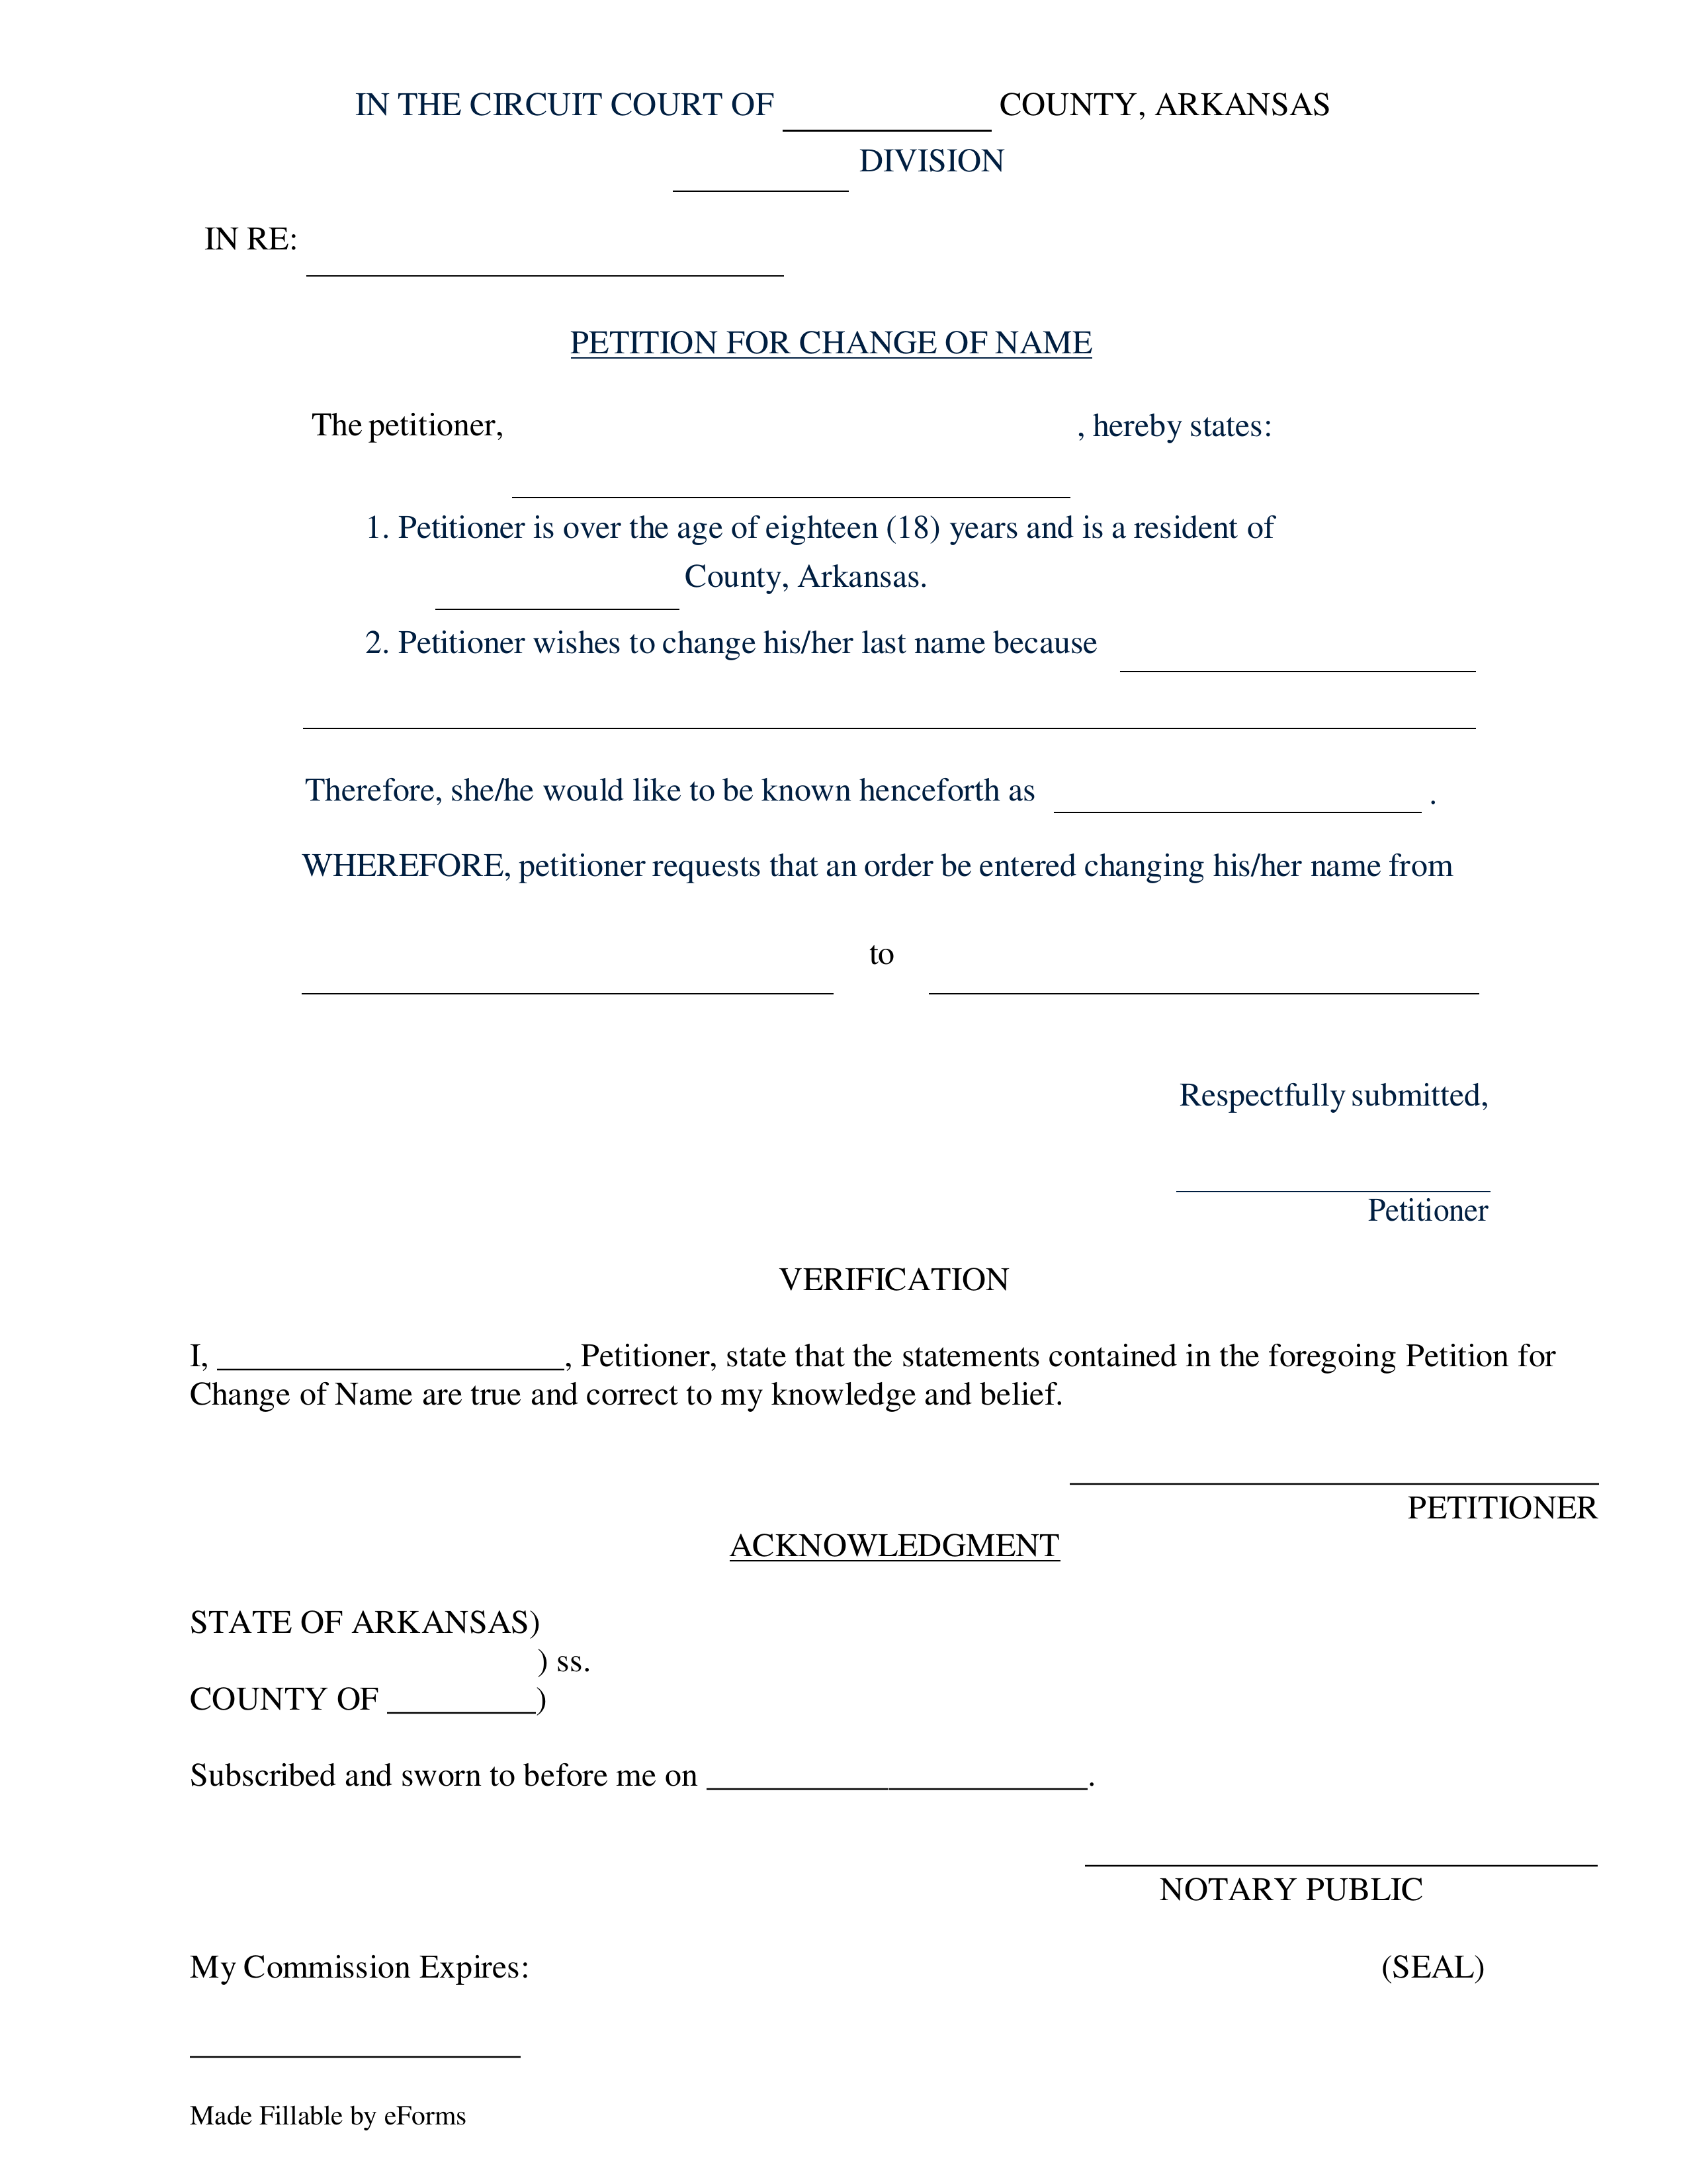 Sample Letter For Change Of Name After Marriage from eforms.com